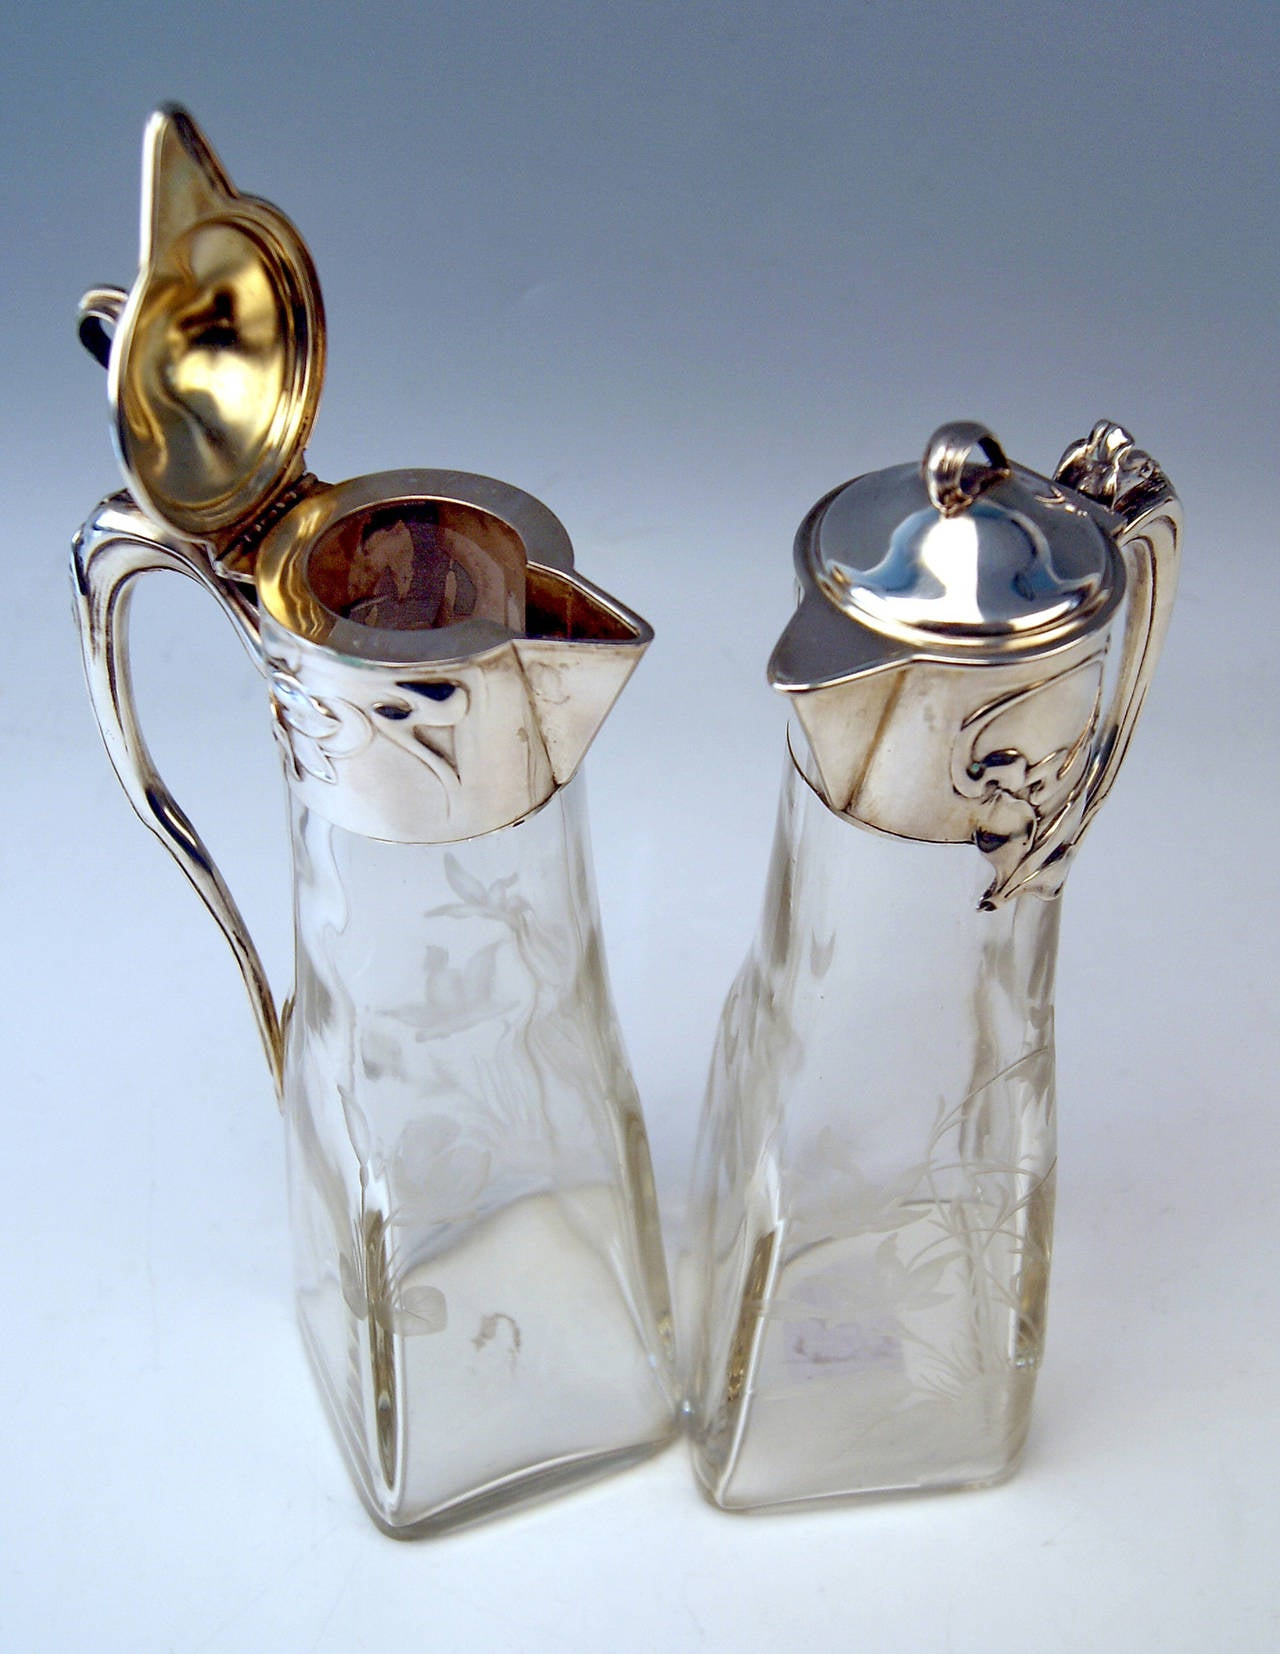 Silver Art Nouveau German Pair of Glass Decanters by Otto Wolter, circa 1900 3